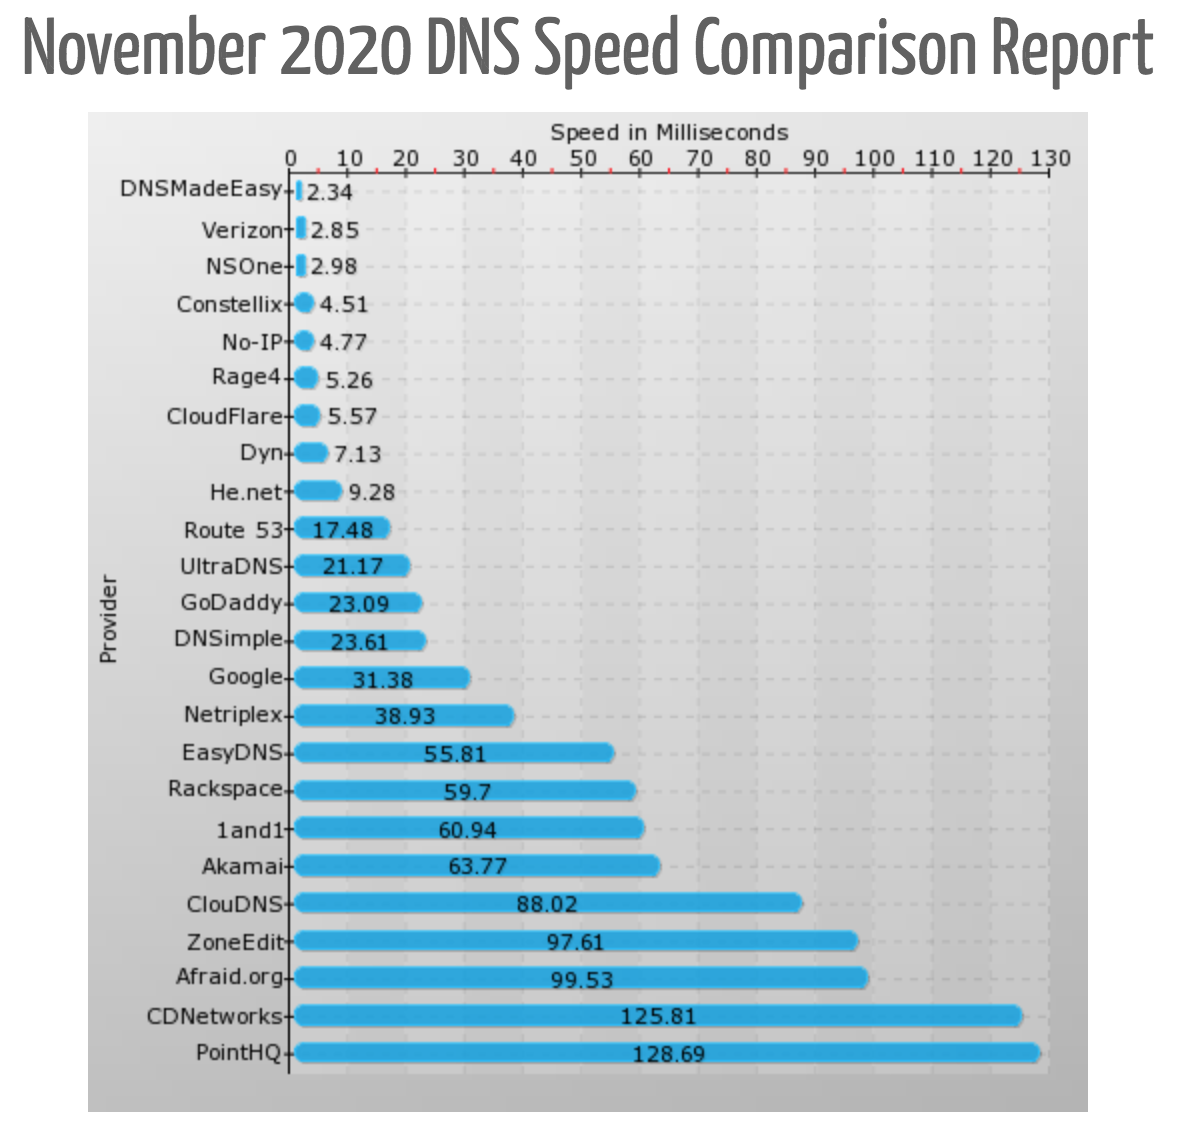 dns made easy speed comparison report